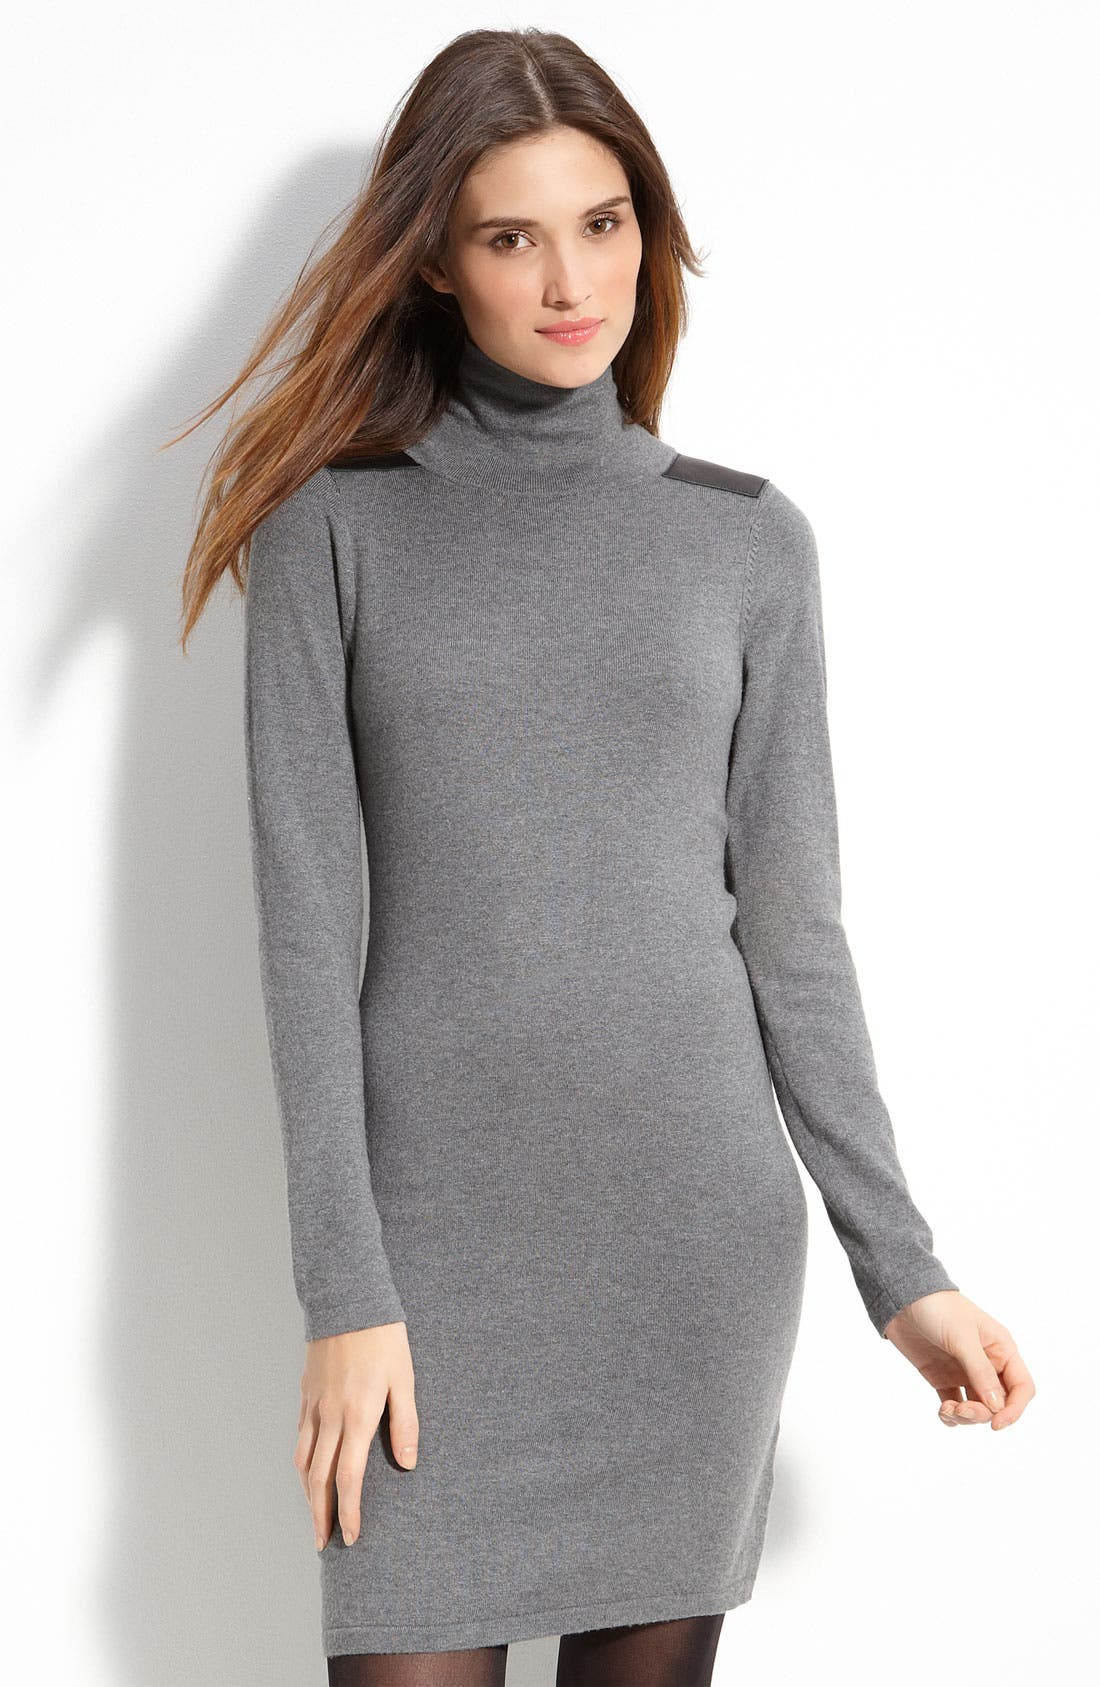 Alternate Image 1 Selected - Vince Camuto Mock Neck Sweater Dress